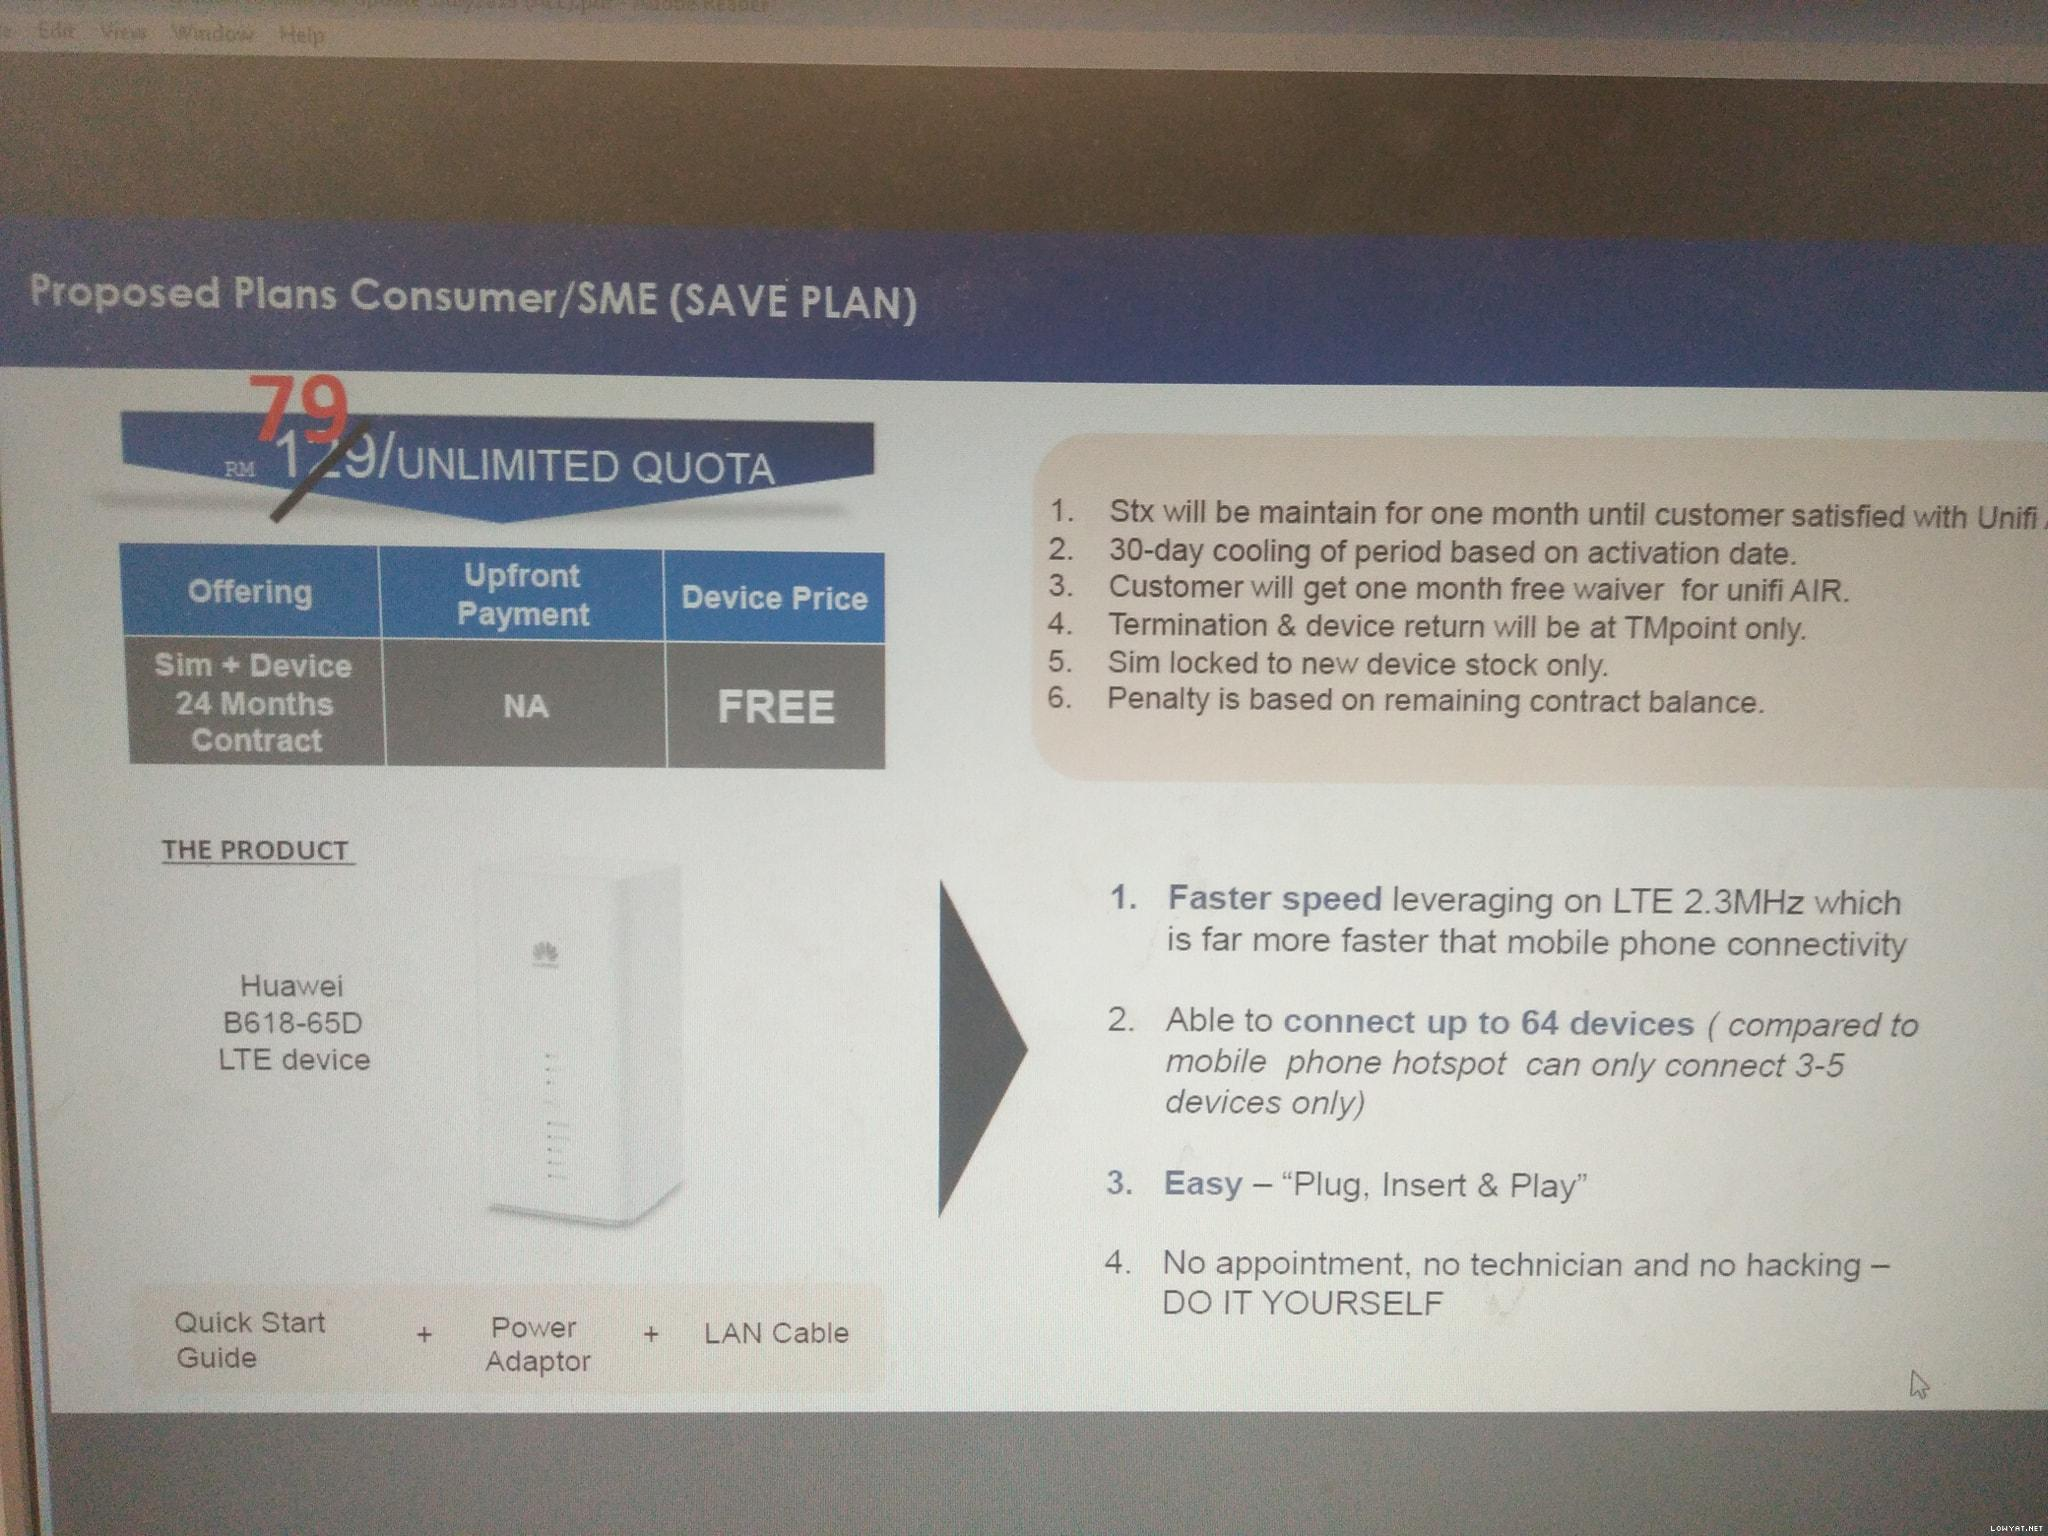 TM to offer Unifi Air with unlimited data at RM79, according to